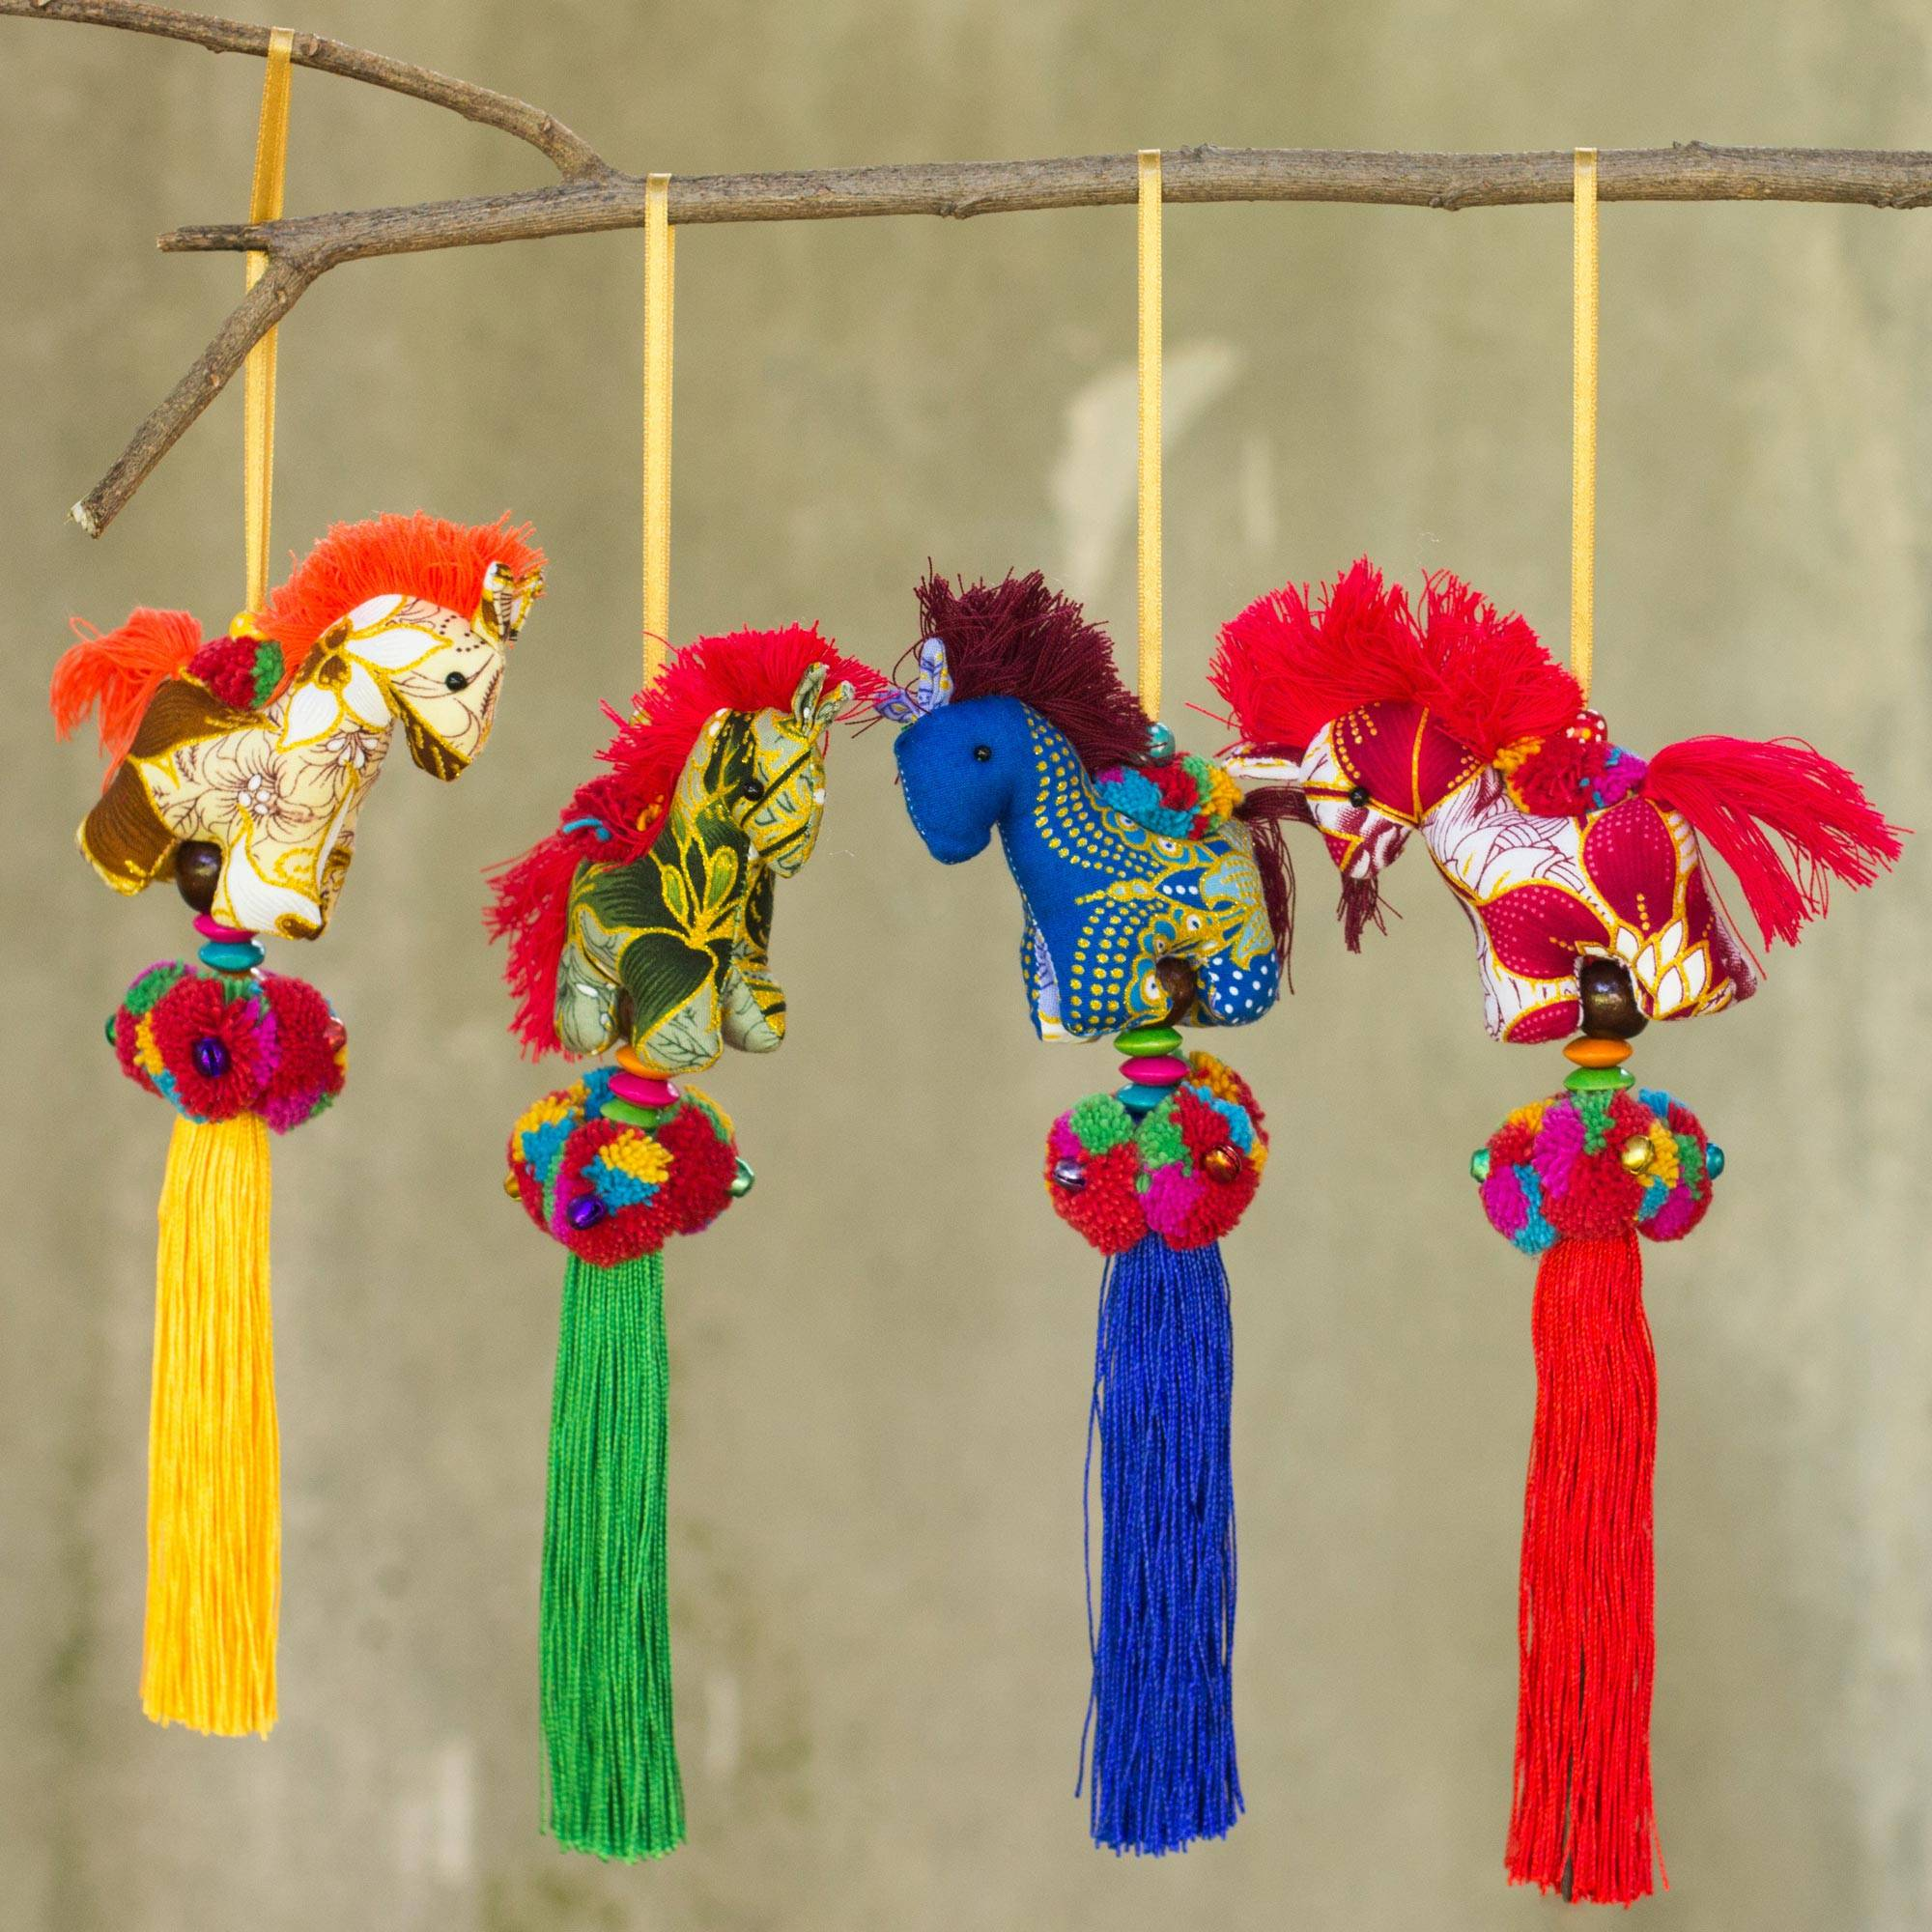 Happy Thai Horses Artisan Crafted Multicolor Thai Cotton Horse Ornaments